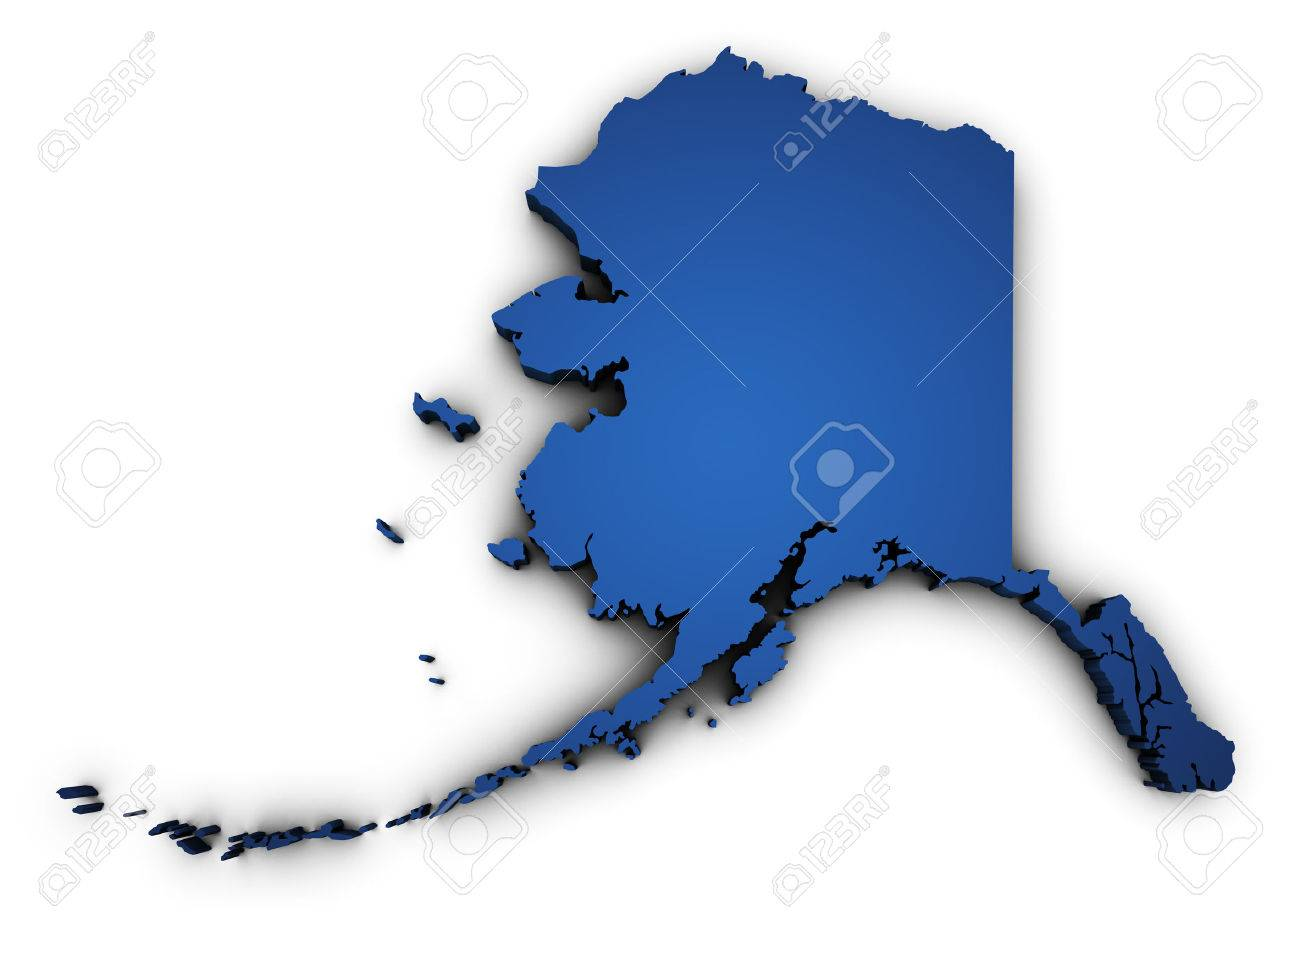 Color art anchorage - Anchorage Alaska Shape 3d Of Alaska State Map Colored In Blue And Isolated On White